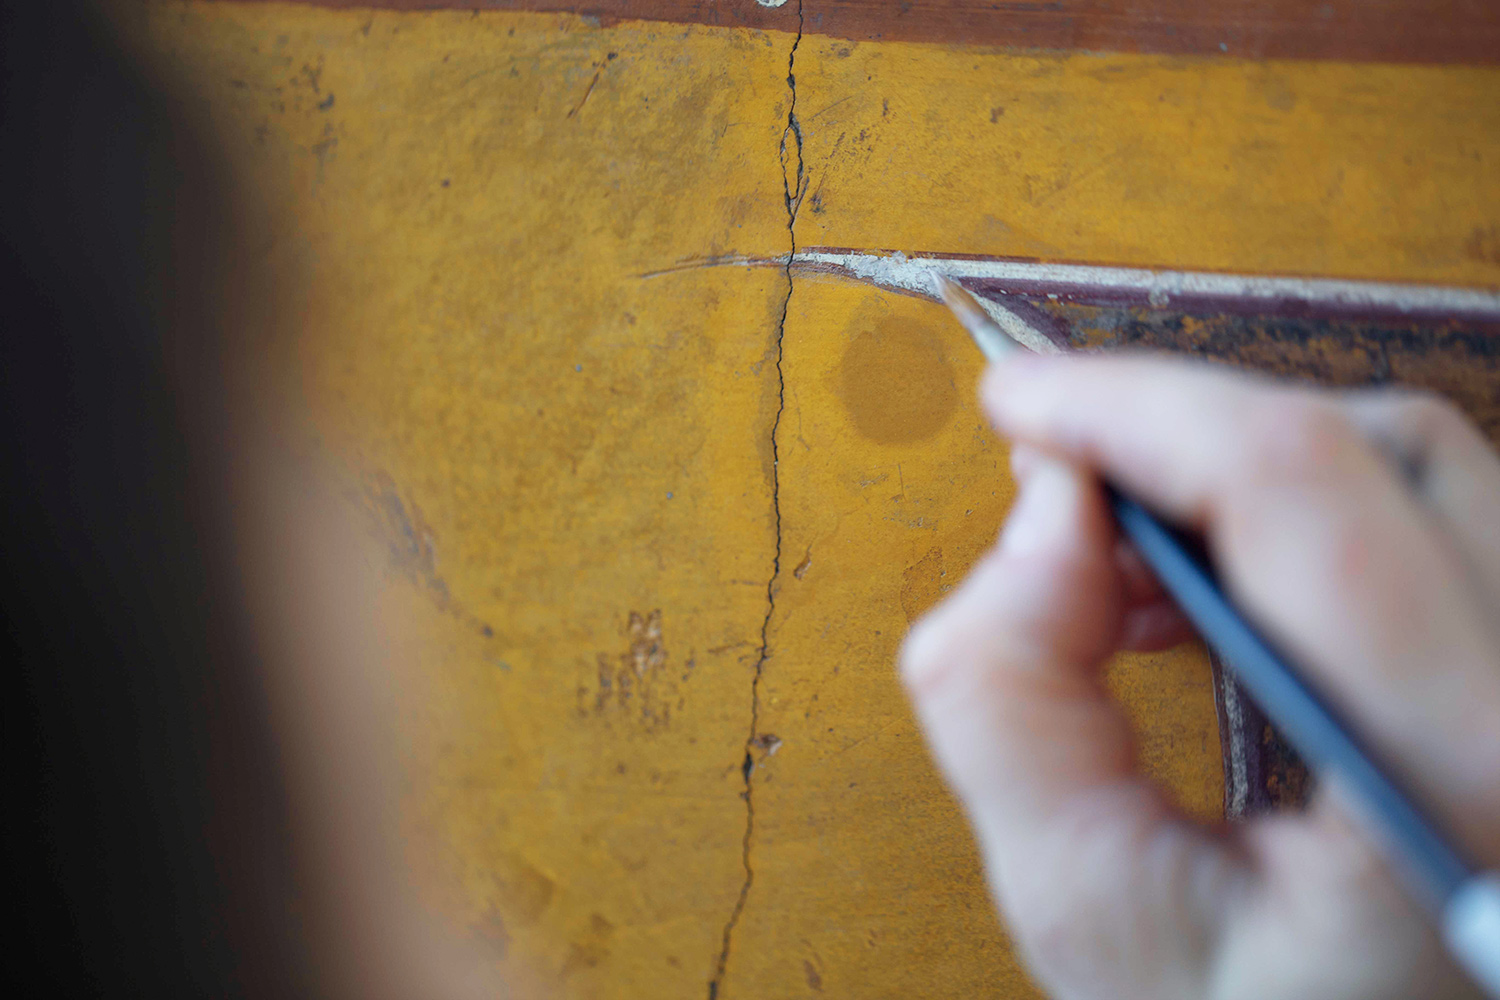 In-painting requires steady concentration and a careful hand.